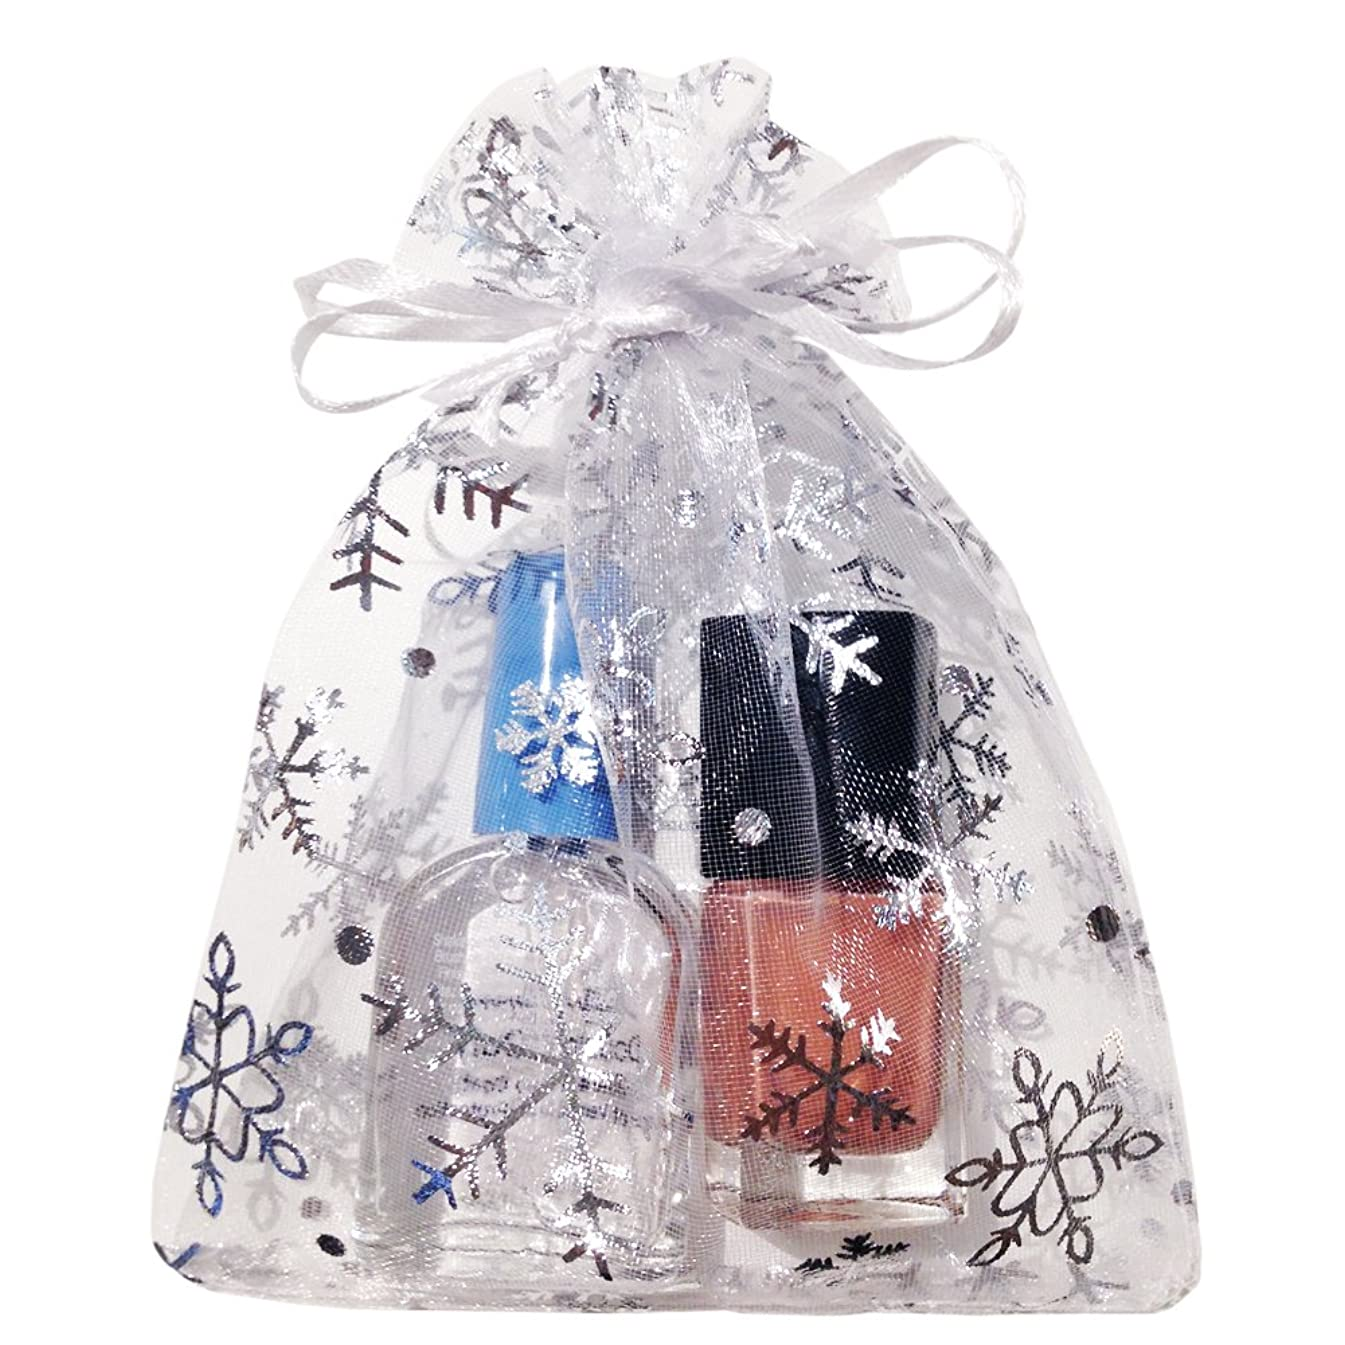 Crafts Organza Gift Bags | White with Silver Snowflakes, Size 6